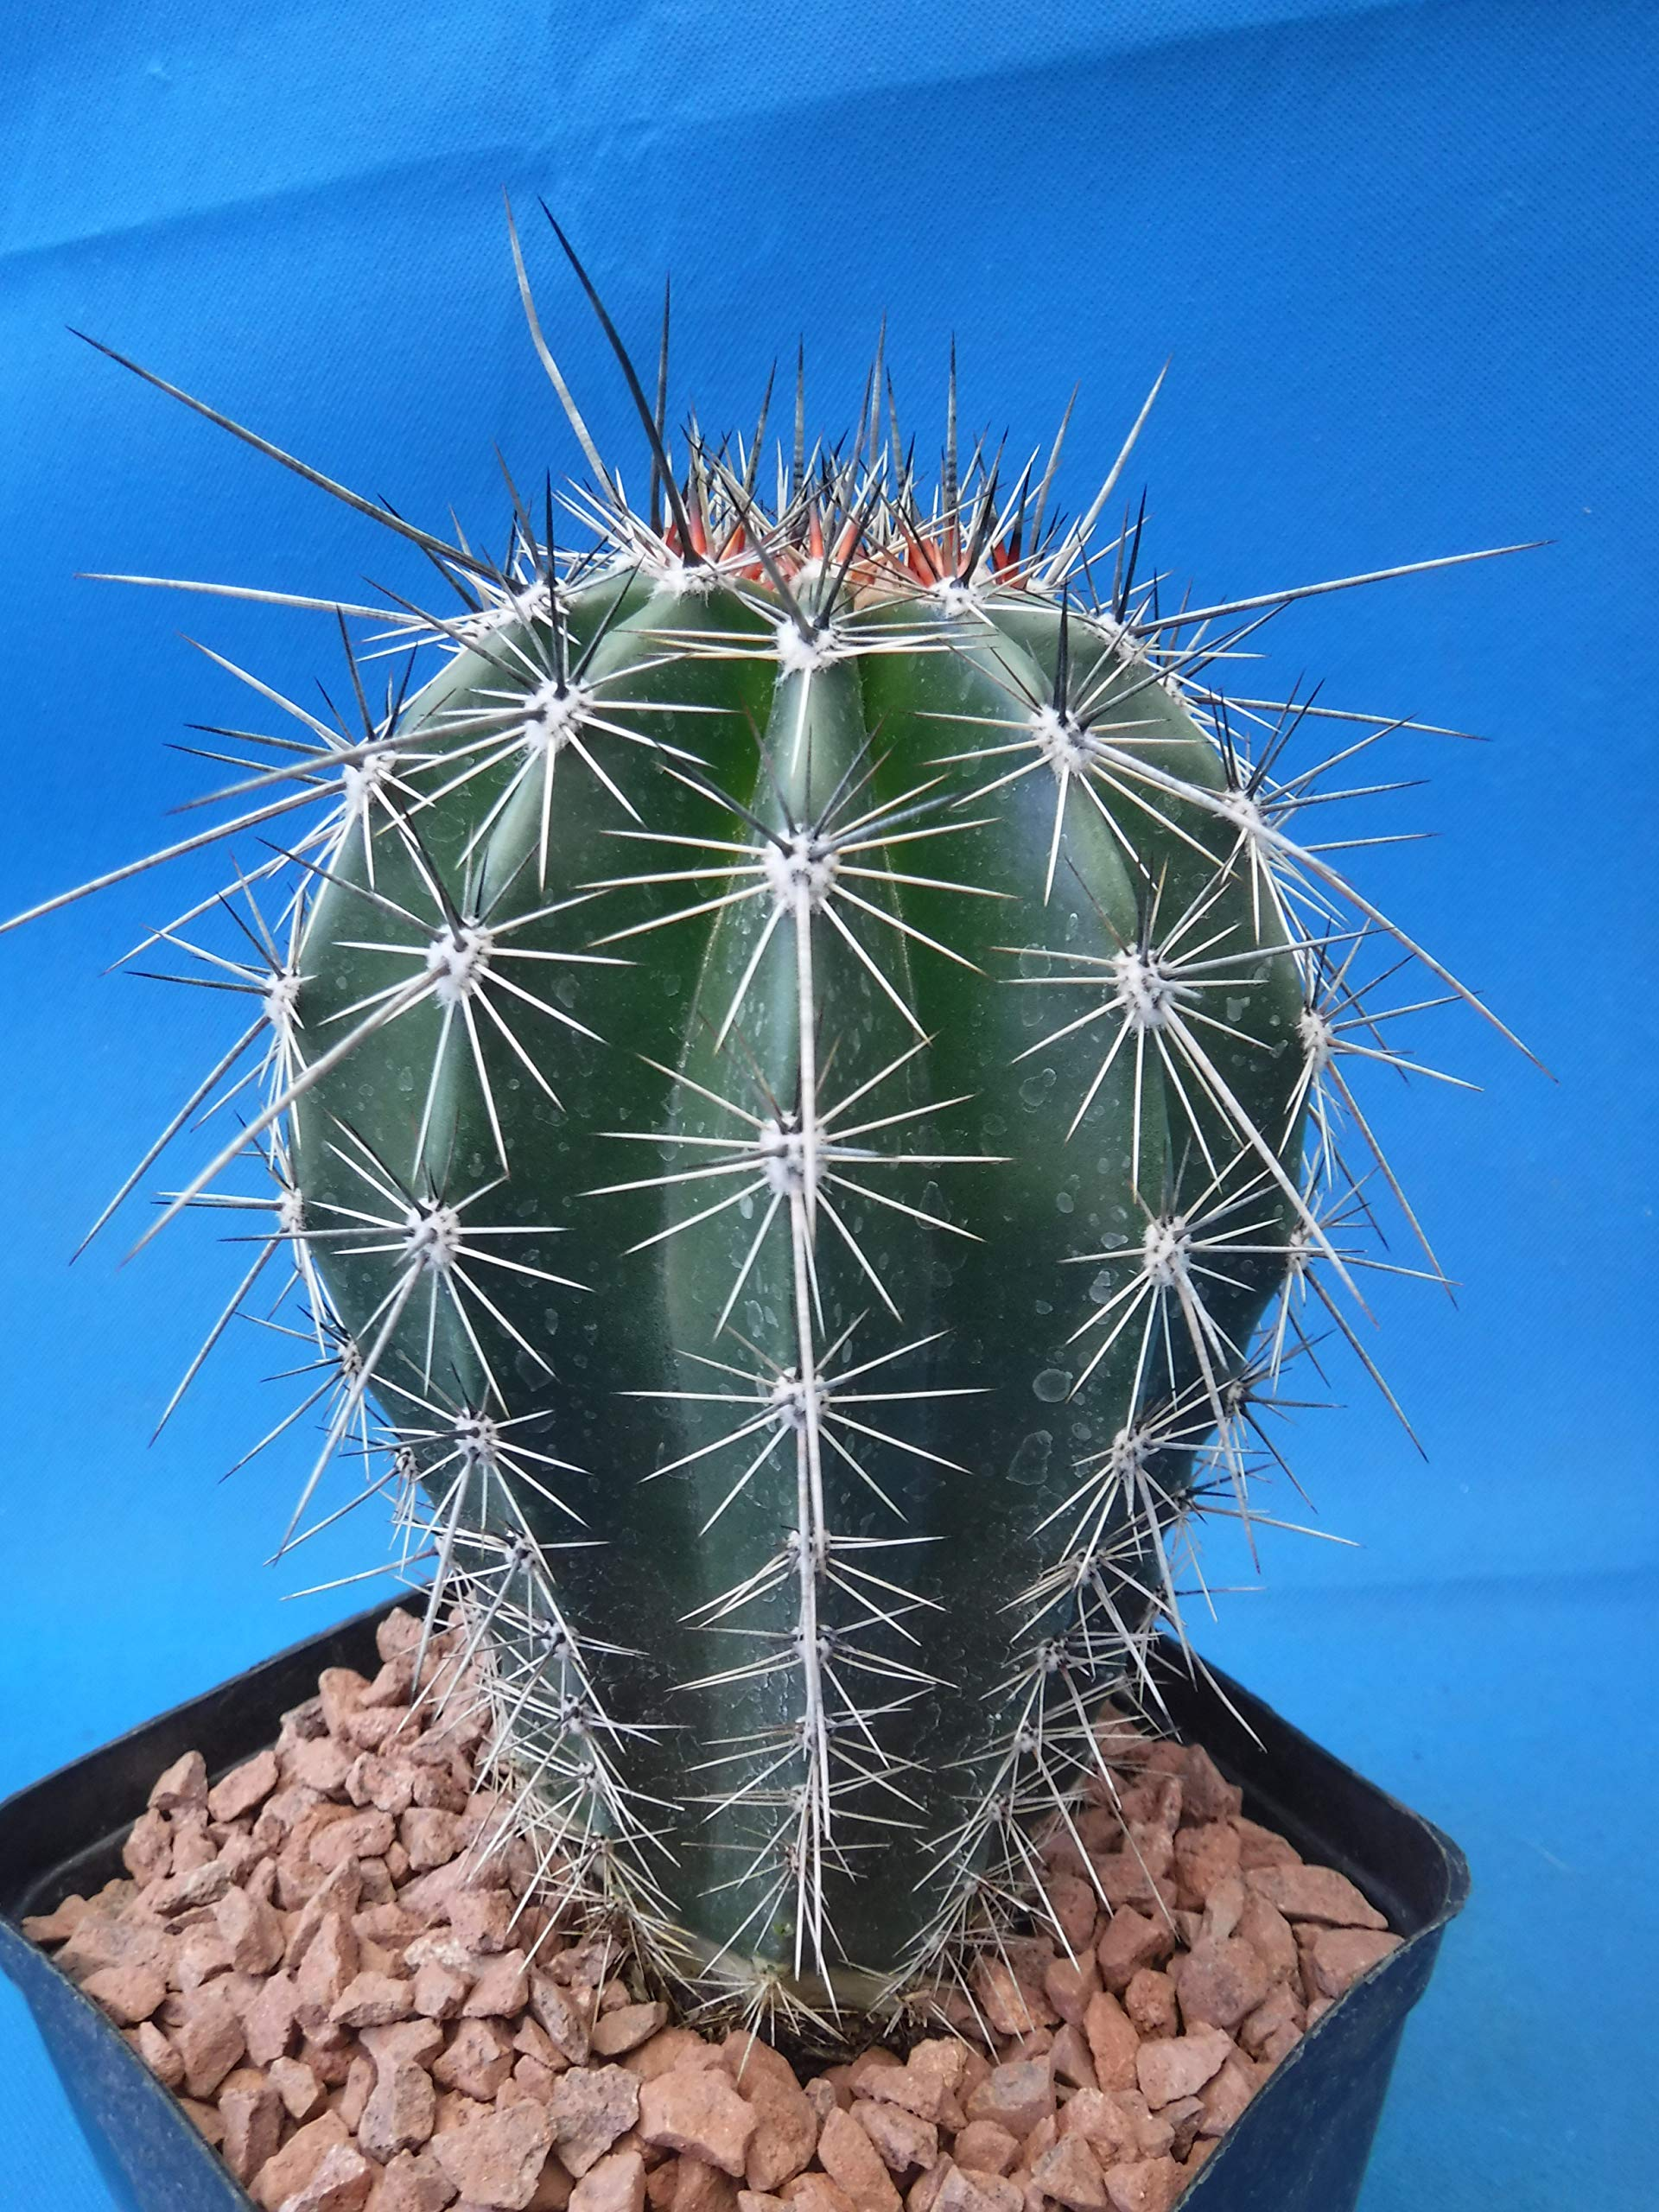 Saguaro Cactus 6'' to 10'' Tall 8 to 10 Years Old (Shipped Bare Root!) by Tucson Tools